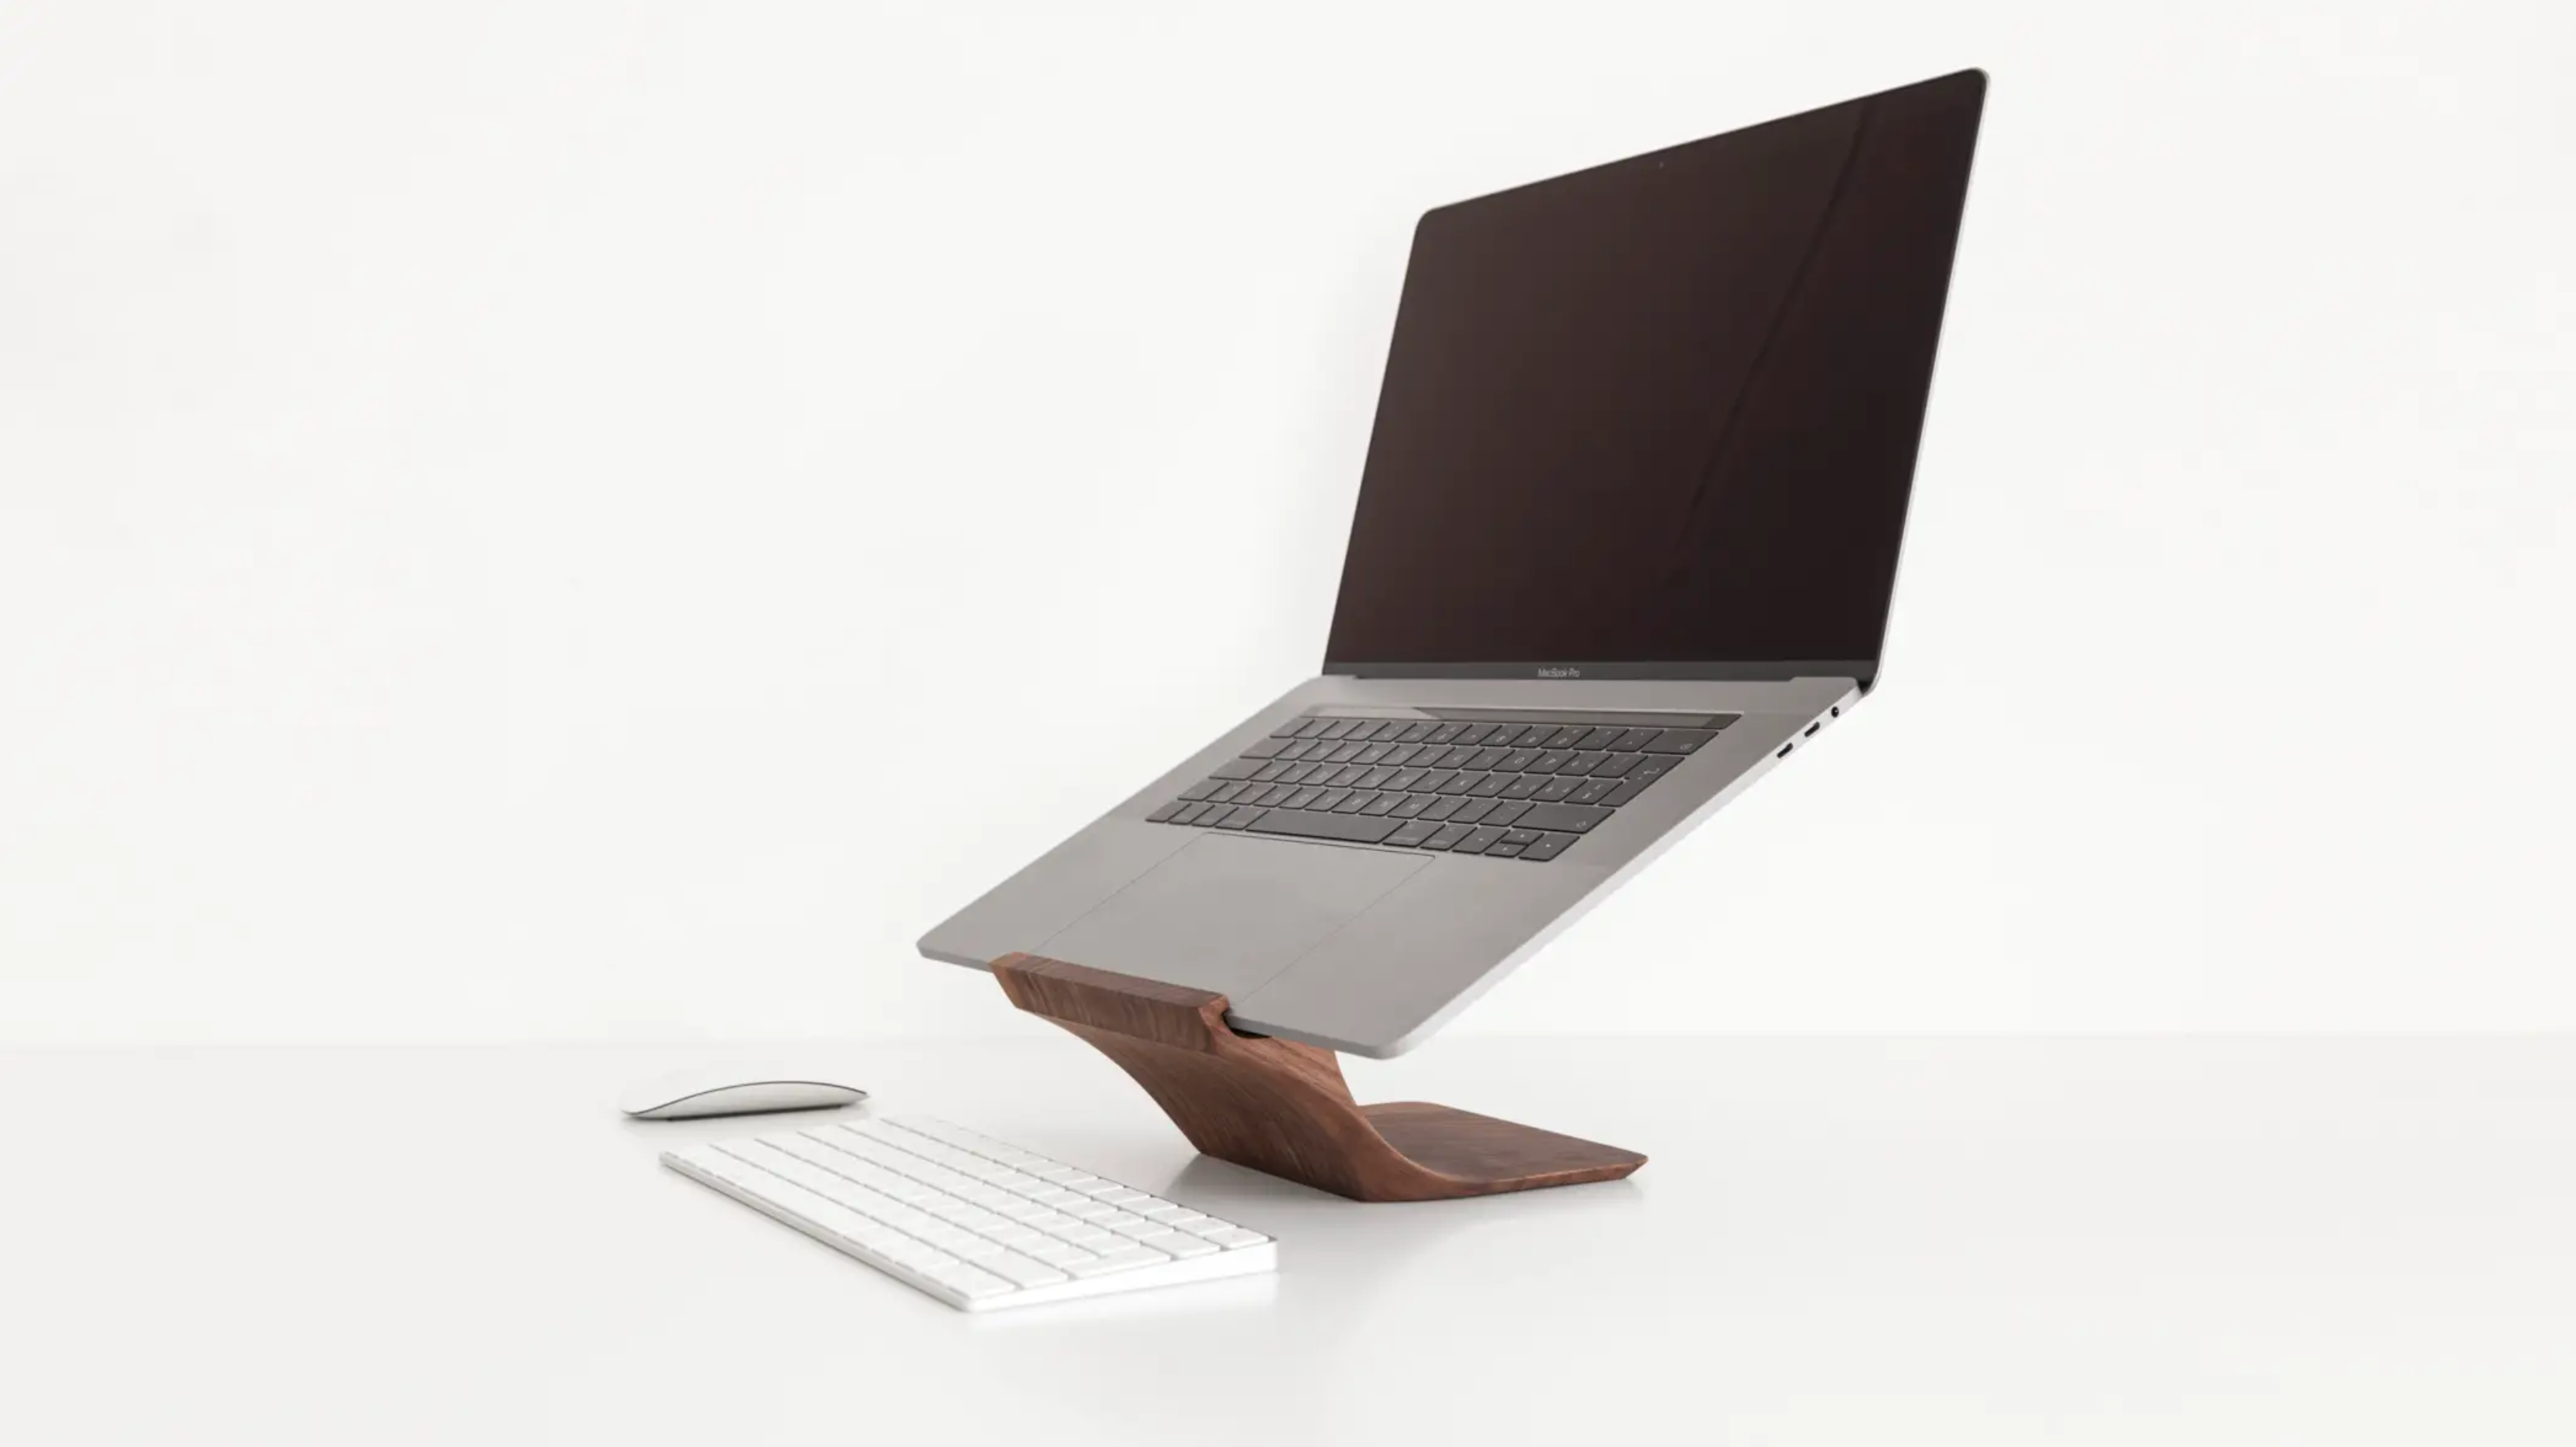 Yohann-MacBook-stand